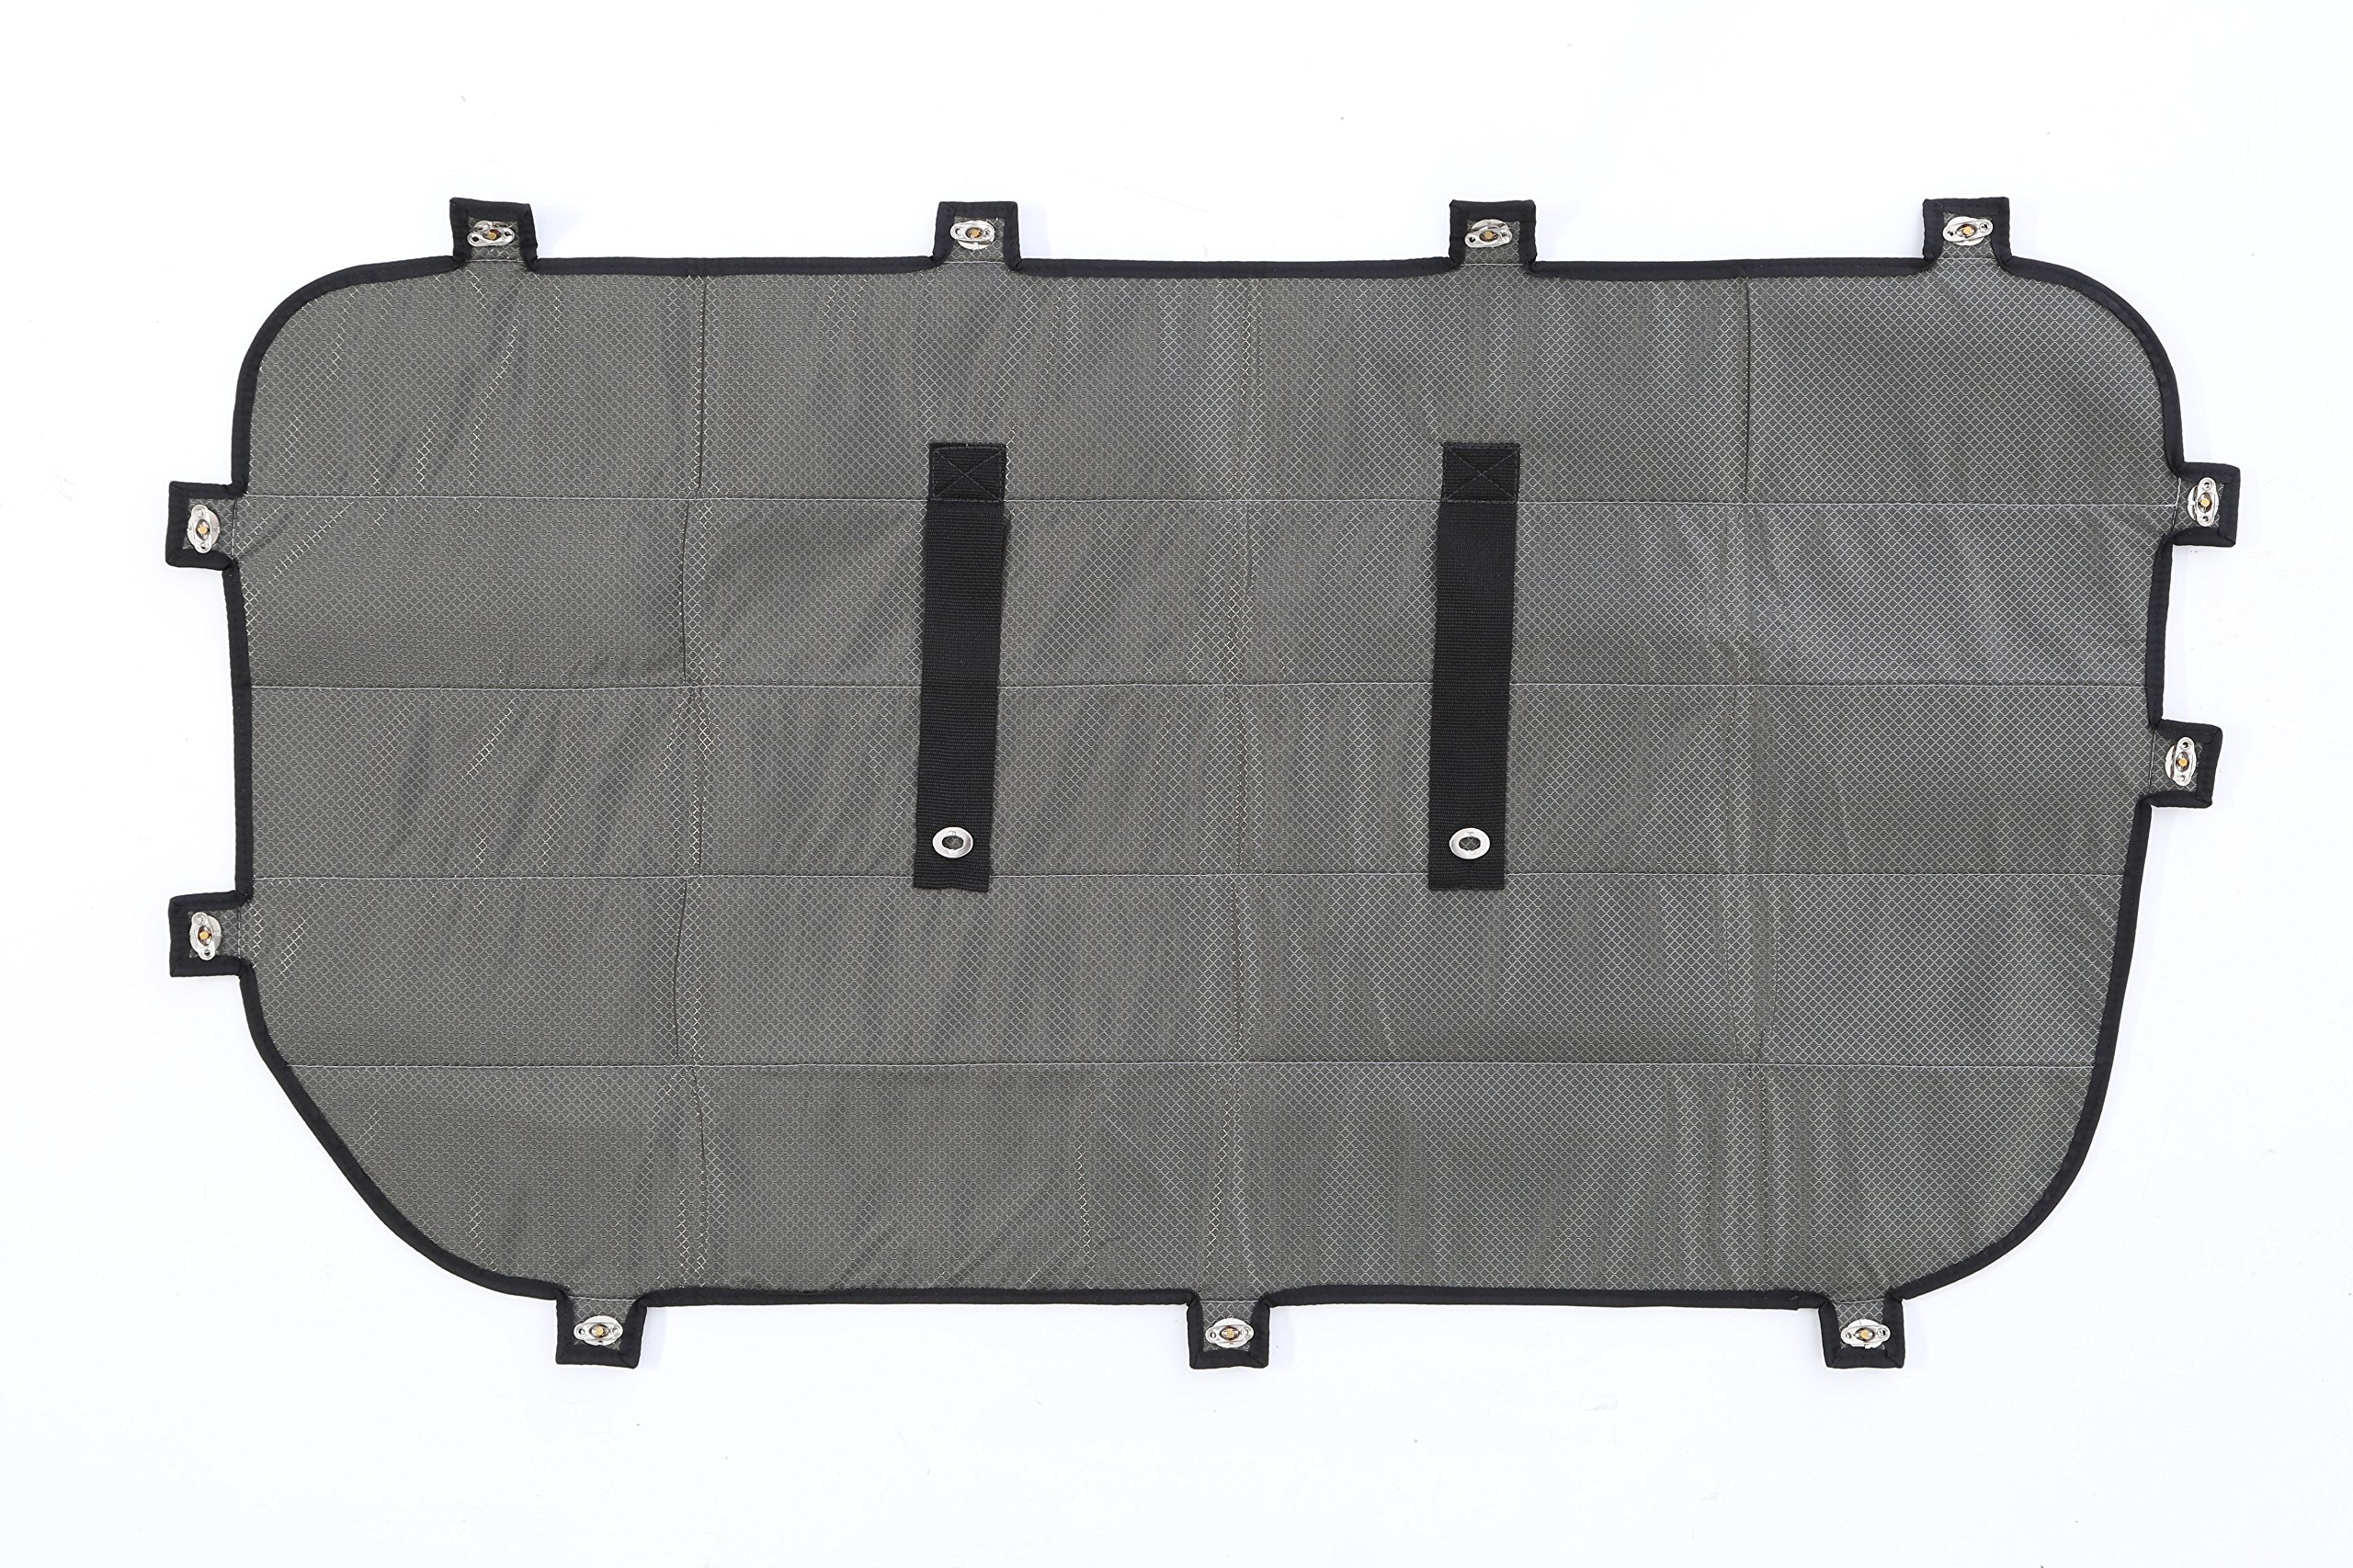 07+ Sprinter Van Driver's Side Galley Window Sun Shade/Privacy Cover, Inset by RB Components (Image #3)